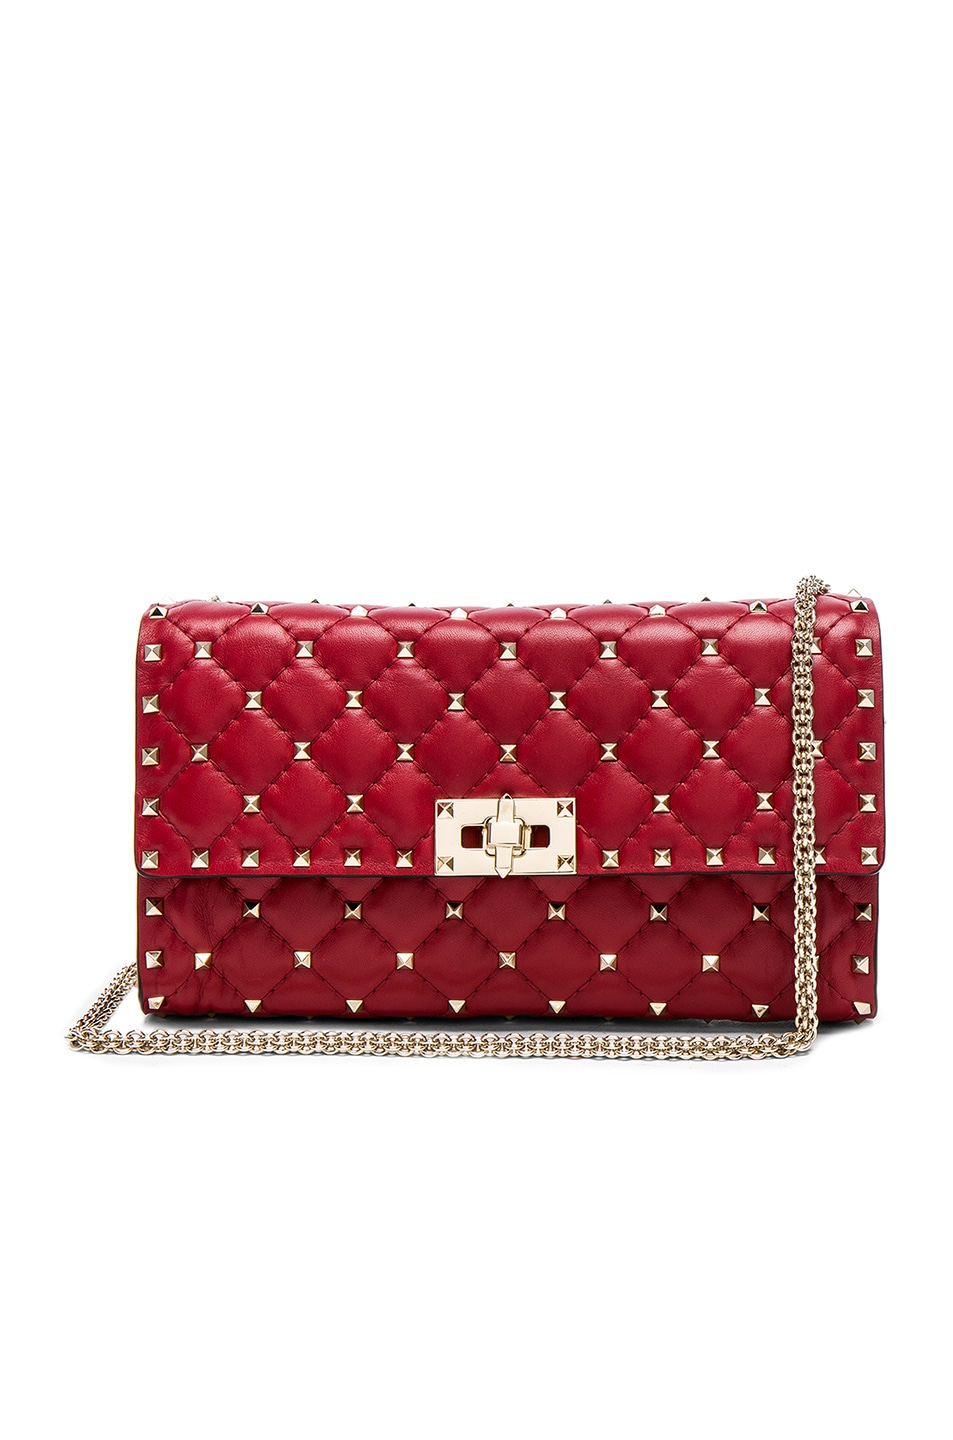 Image 1 of Valentino Rockstud Spike Clutch in Red